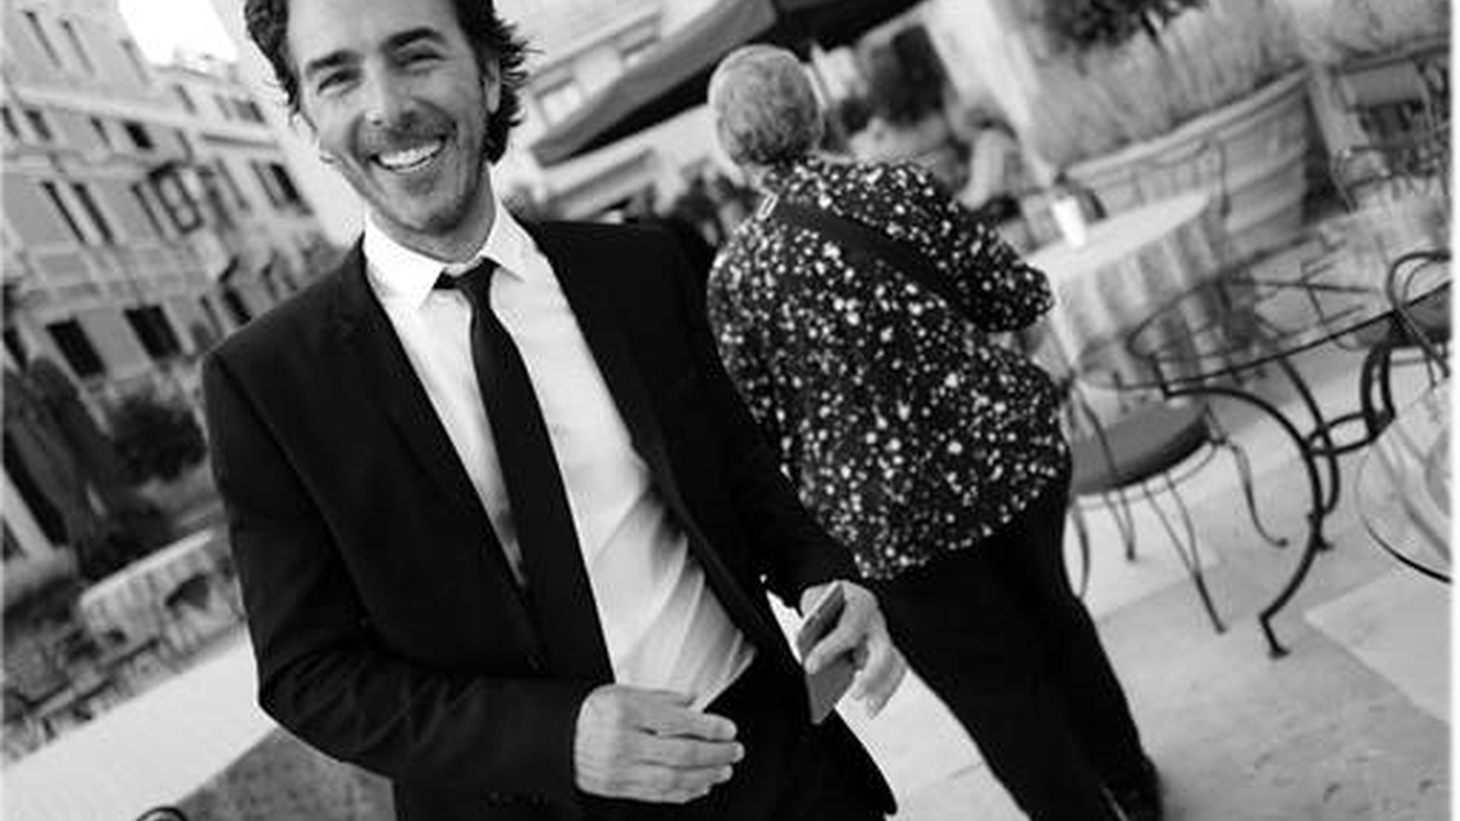 Director Shawn Levy built a career on the 'Night at the Museum' franchise, but wanted to break out of his box. He set out to produce, and this past year scored with the Oscar-nominated movie 'Arrival' and the Netflix megahit 'Stranger Things.' He tells us how he went about getting the industry to reconsider him.